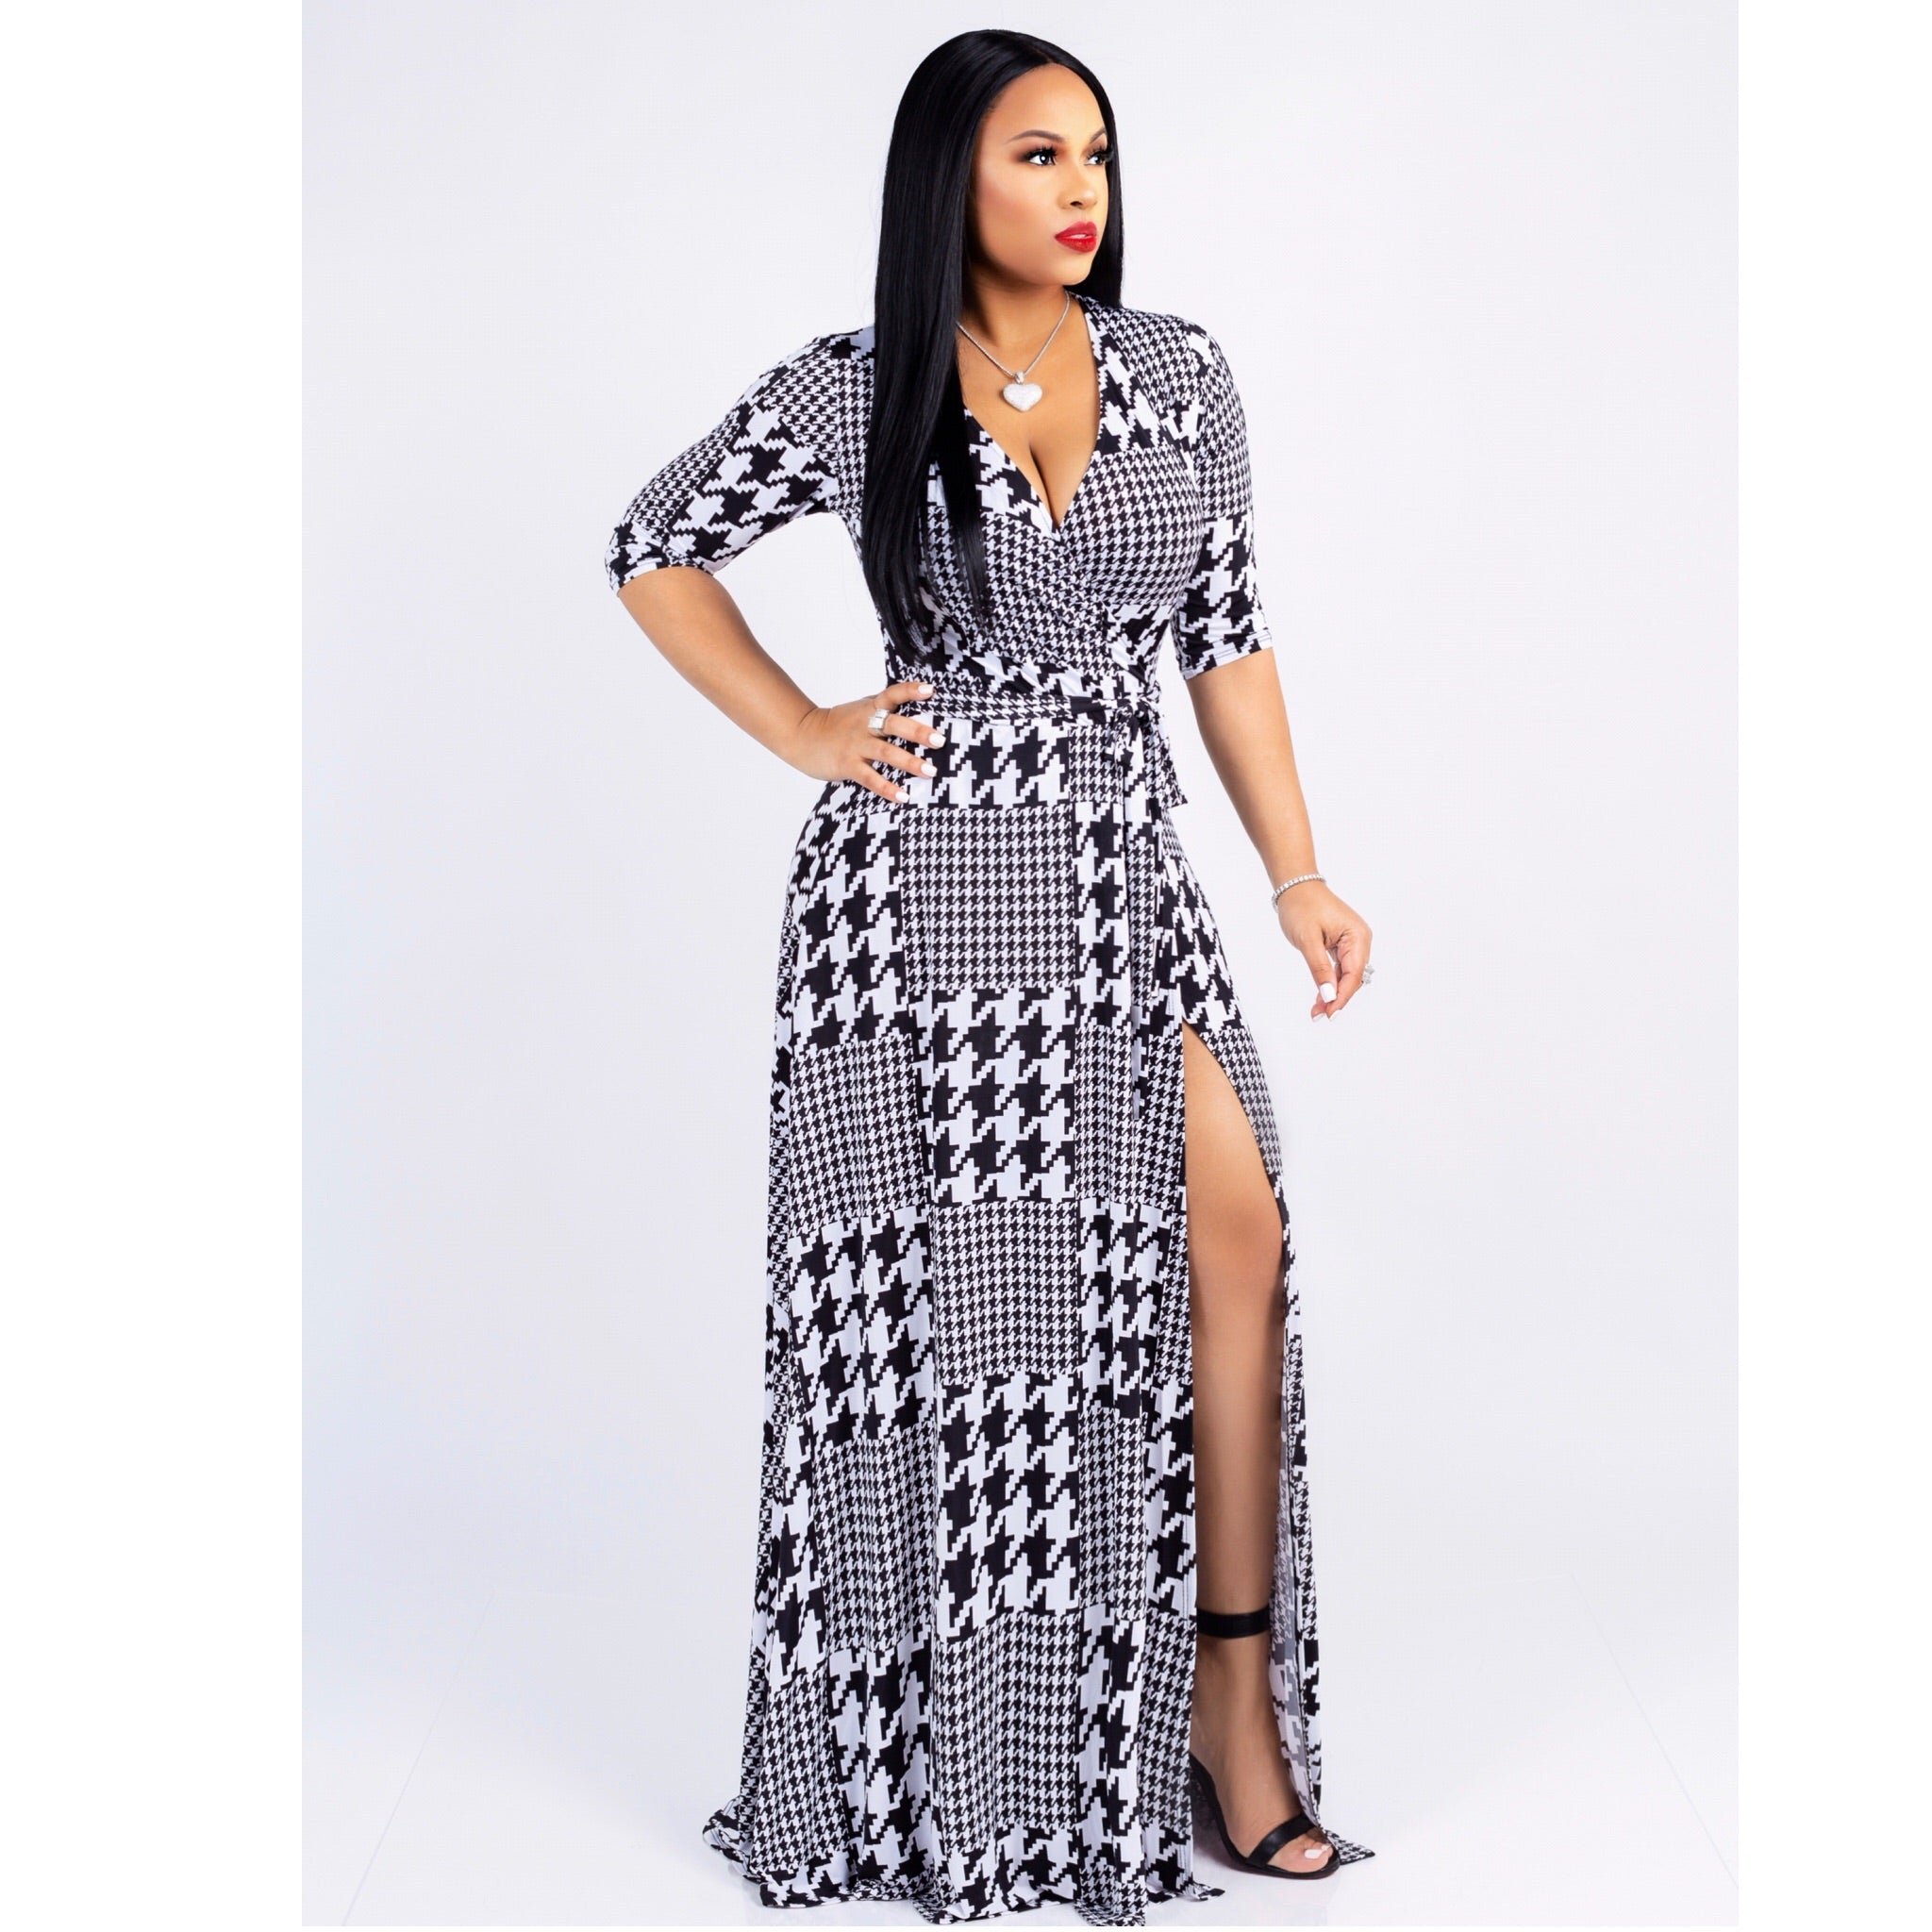 Raquel Wrap Dress